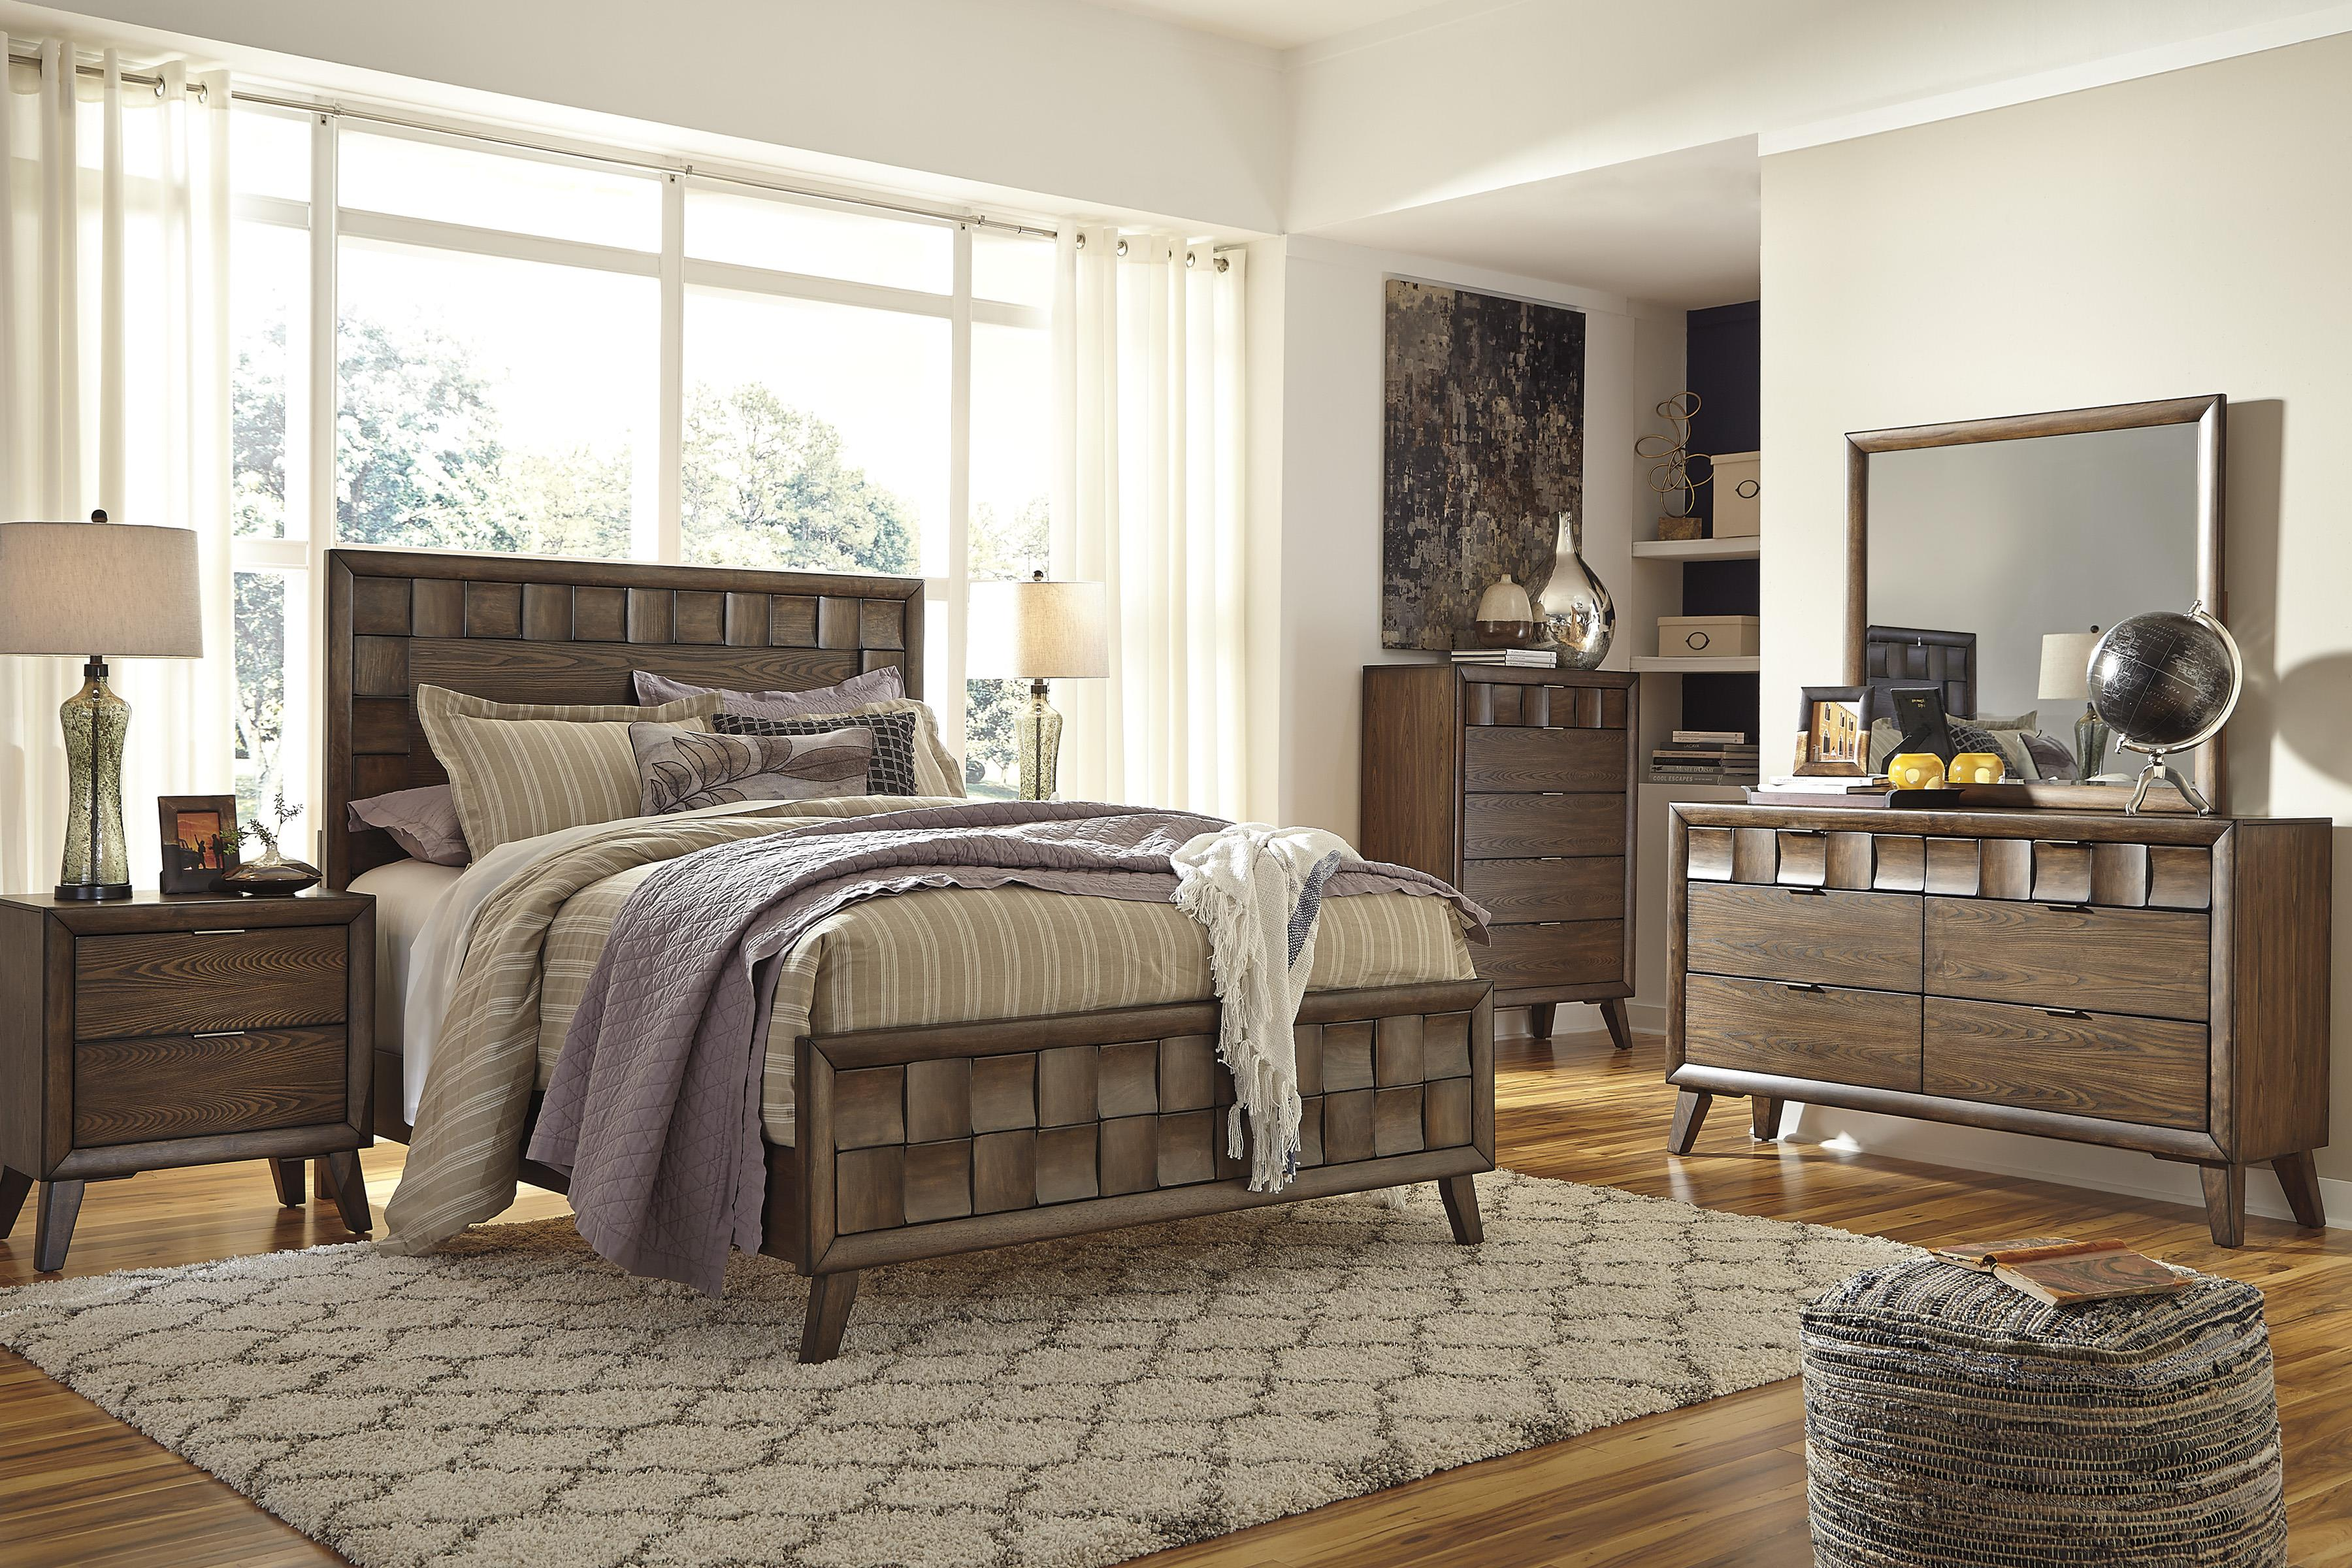 Signature Design by Ashley Debeaux King Bedroom Group - Item Number: B535 K Bedroom Group 2